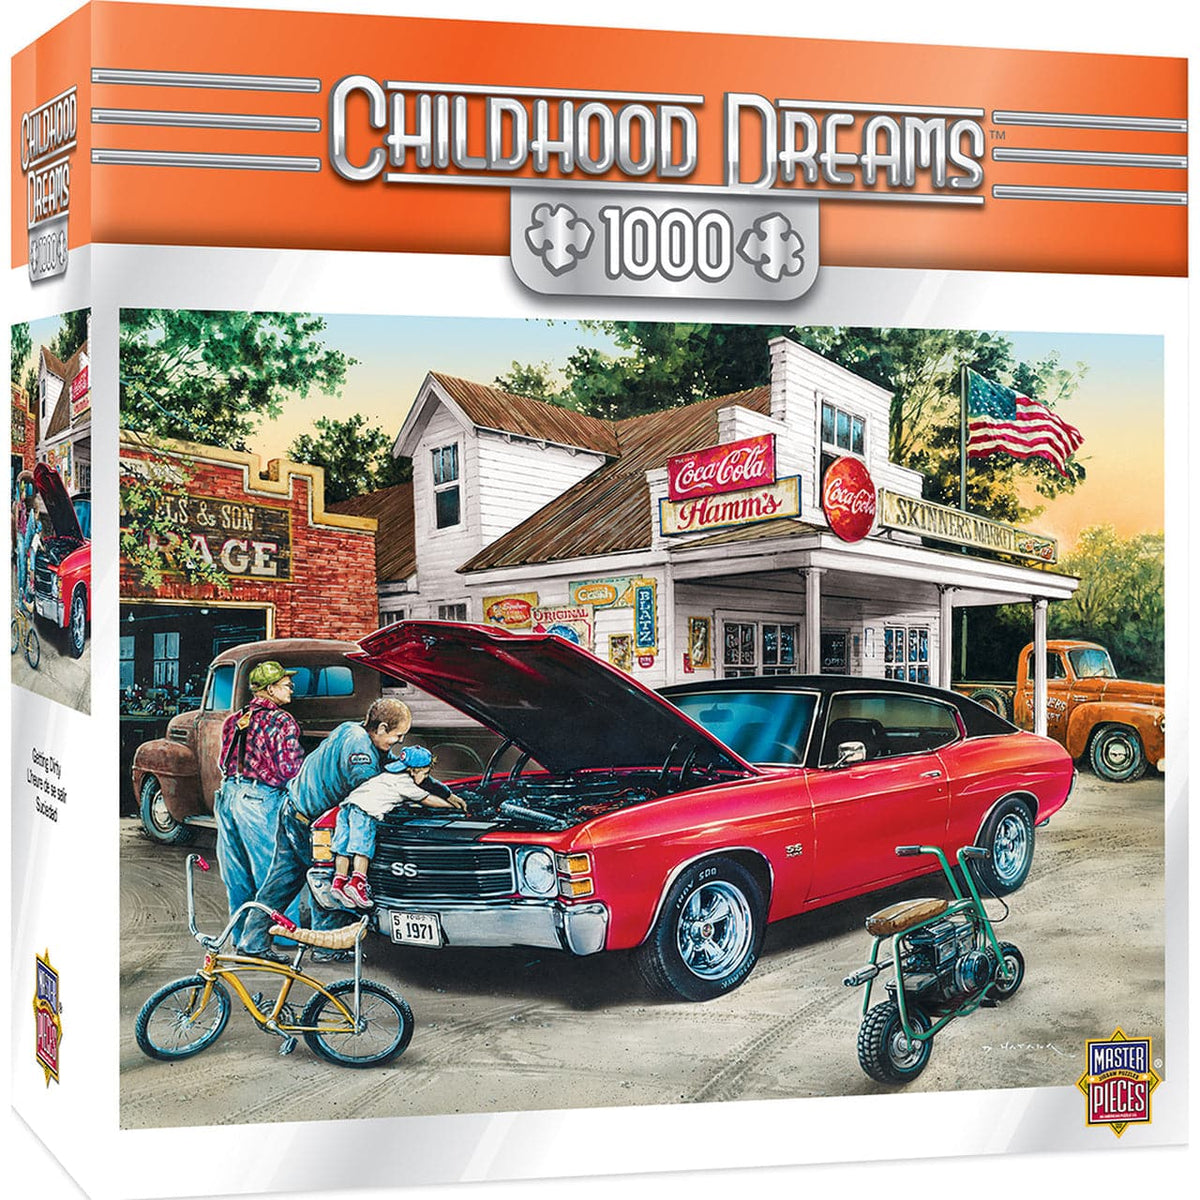 Childhood Dreams - Getting Dirty - 1,000 Piece Puzzle